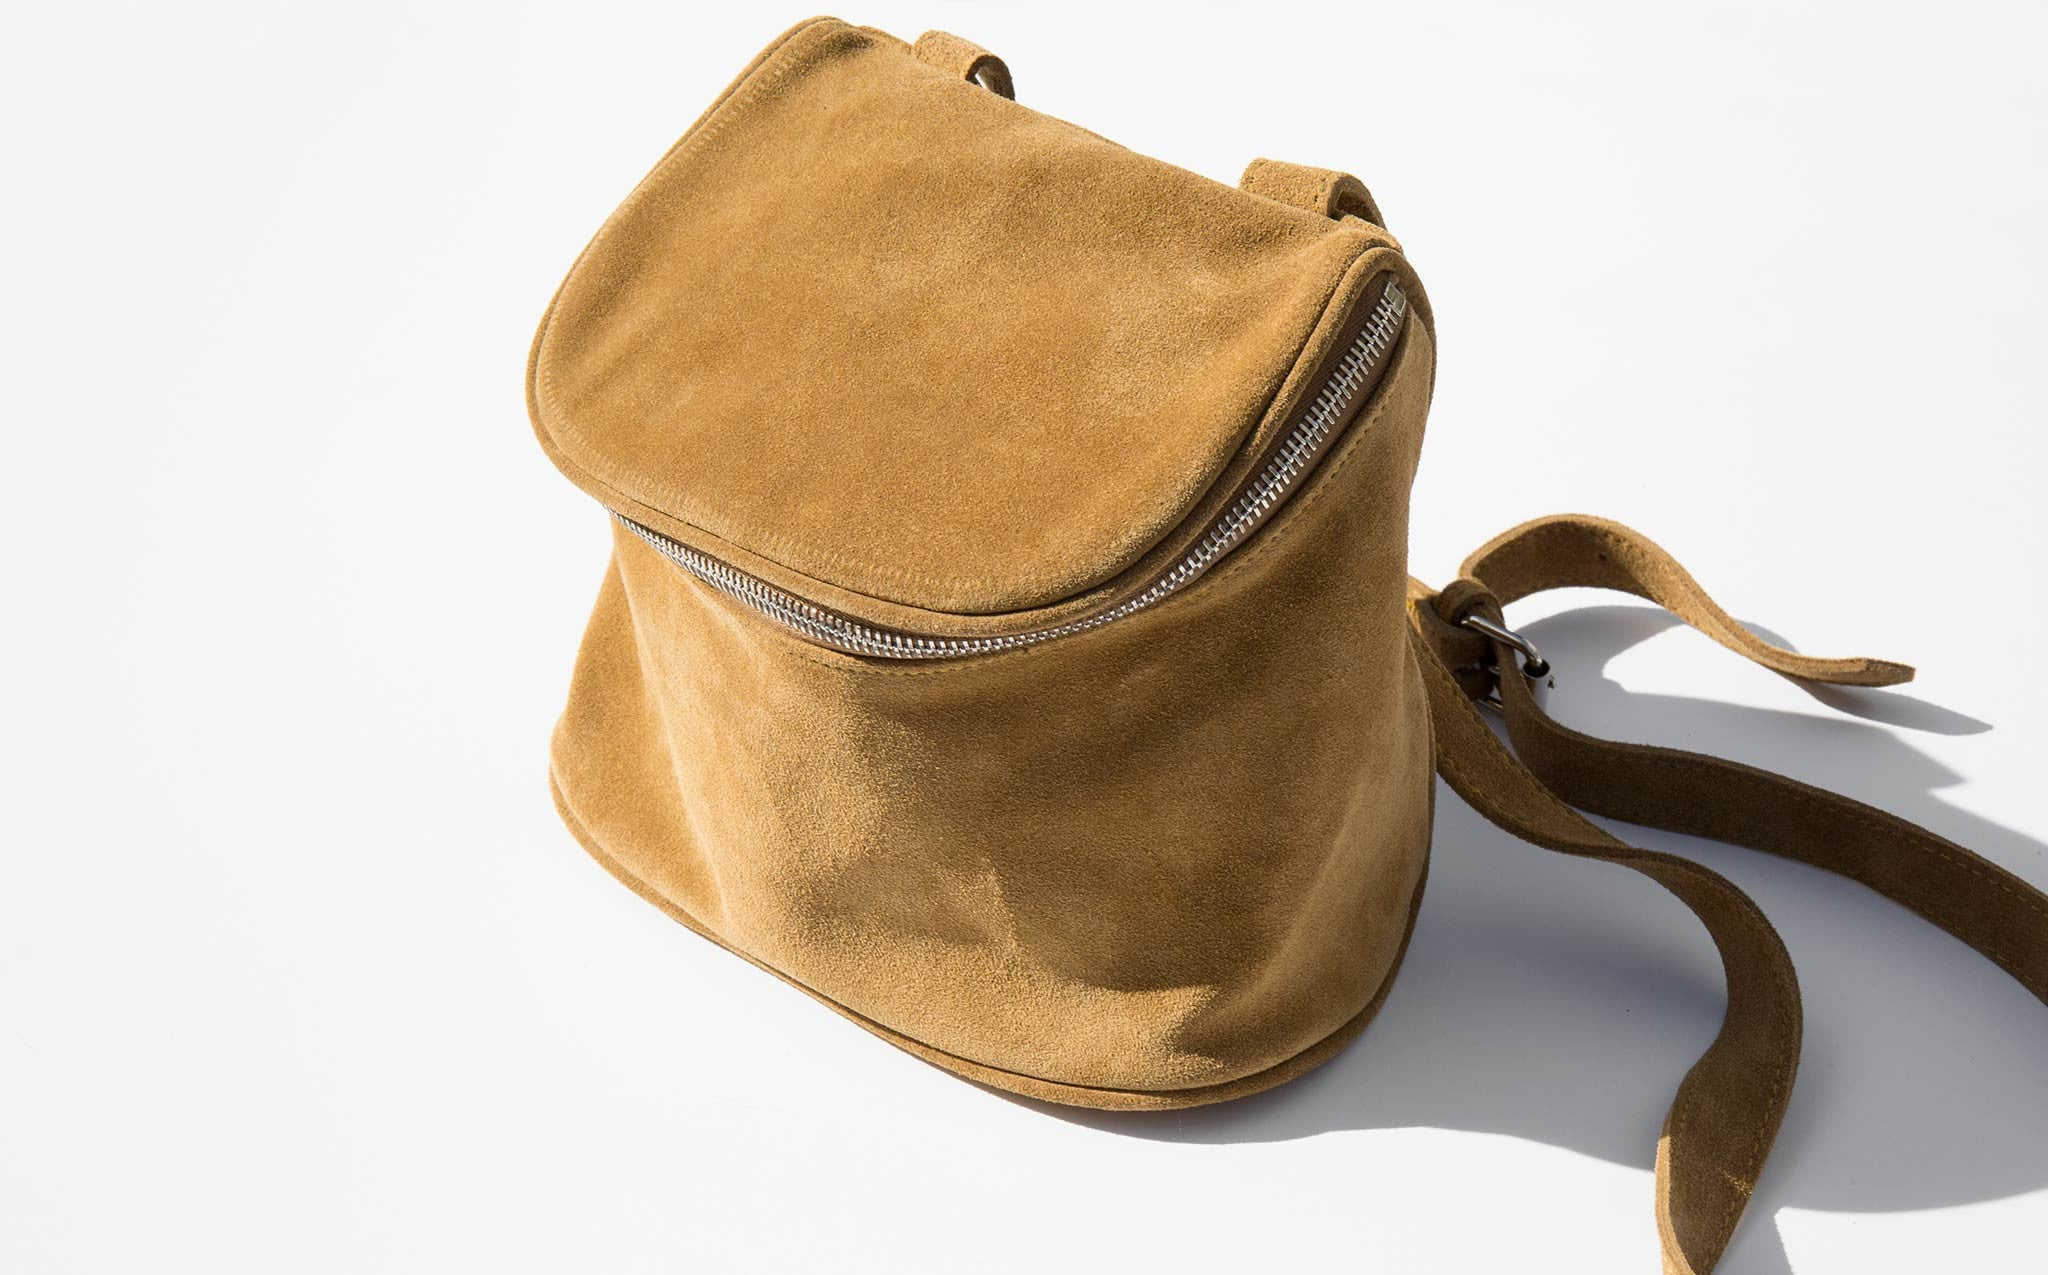 Clyde Golden Brown Suede Camera Bag kindred black